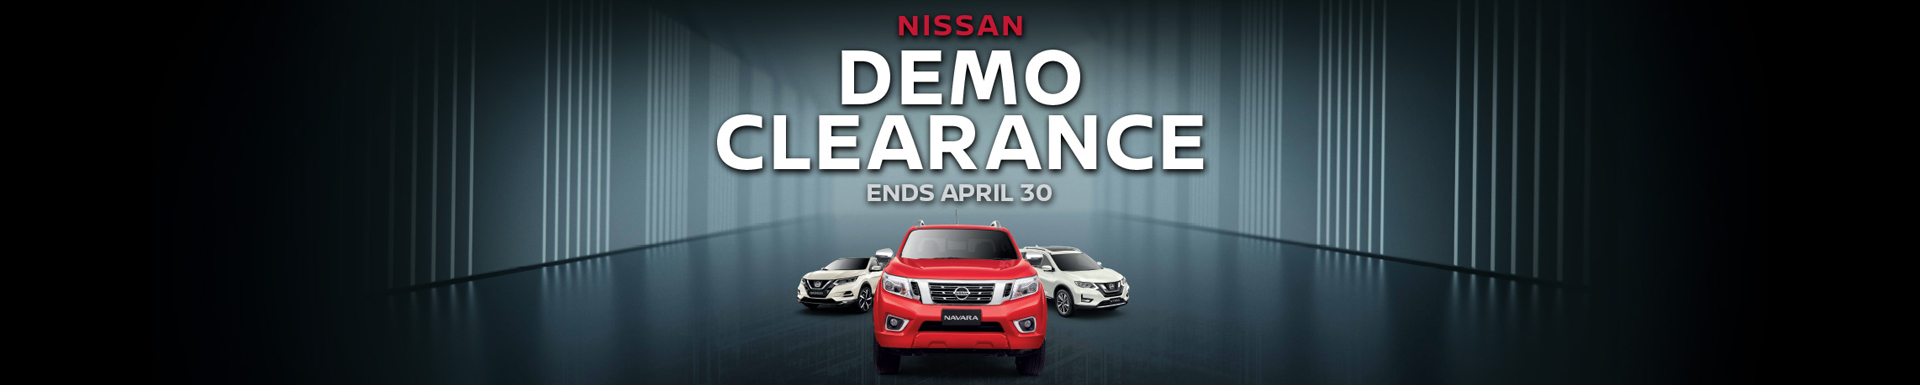 Nissan Demo Clearance